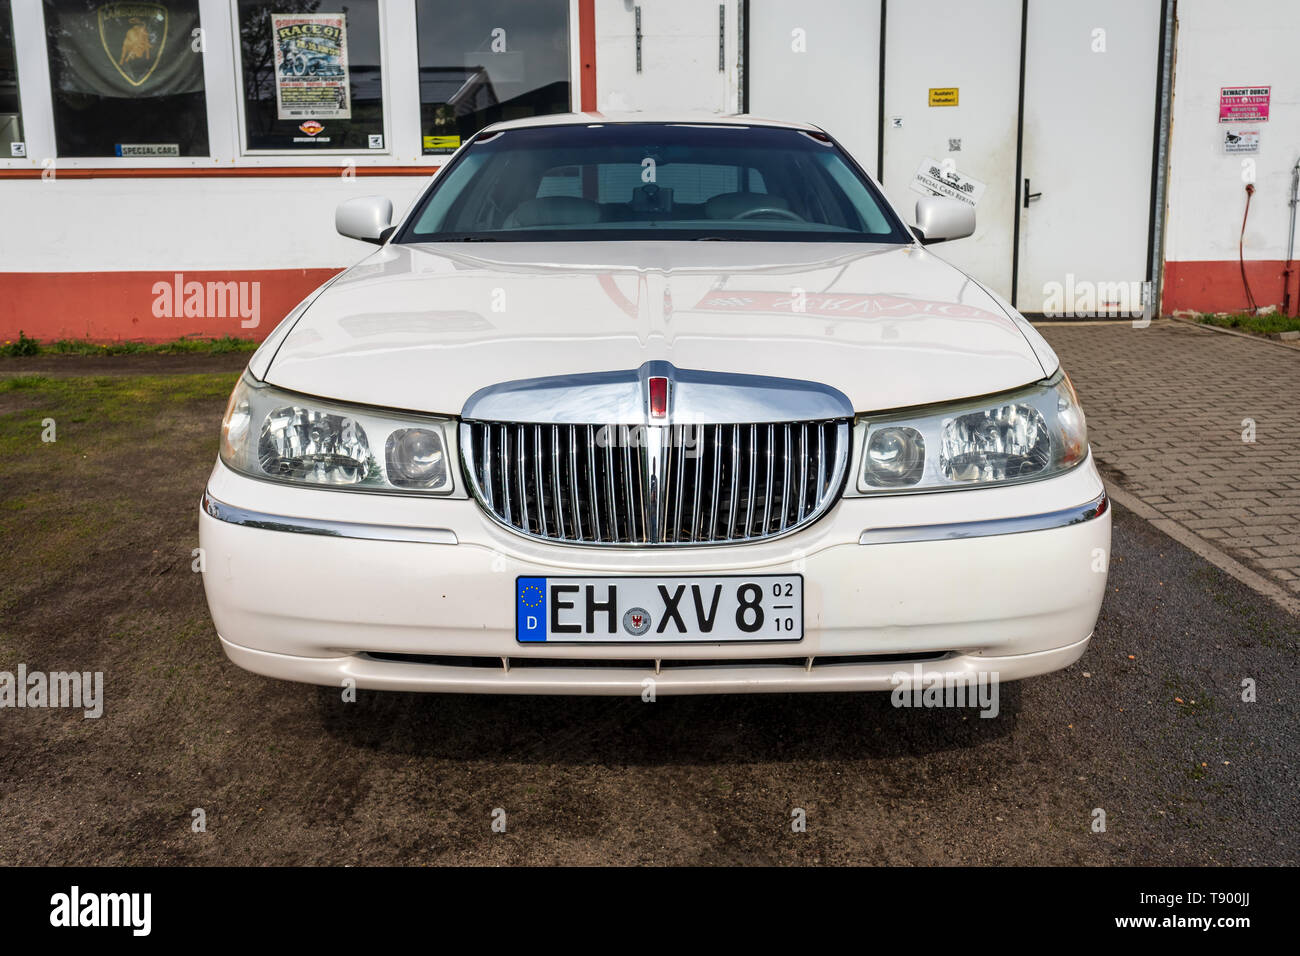 hight resolution of berlin april 27 2019 full size luxury car lincoln town car